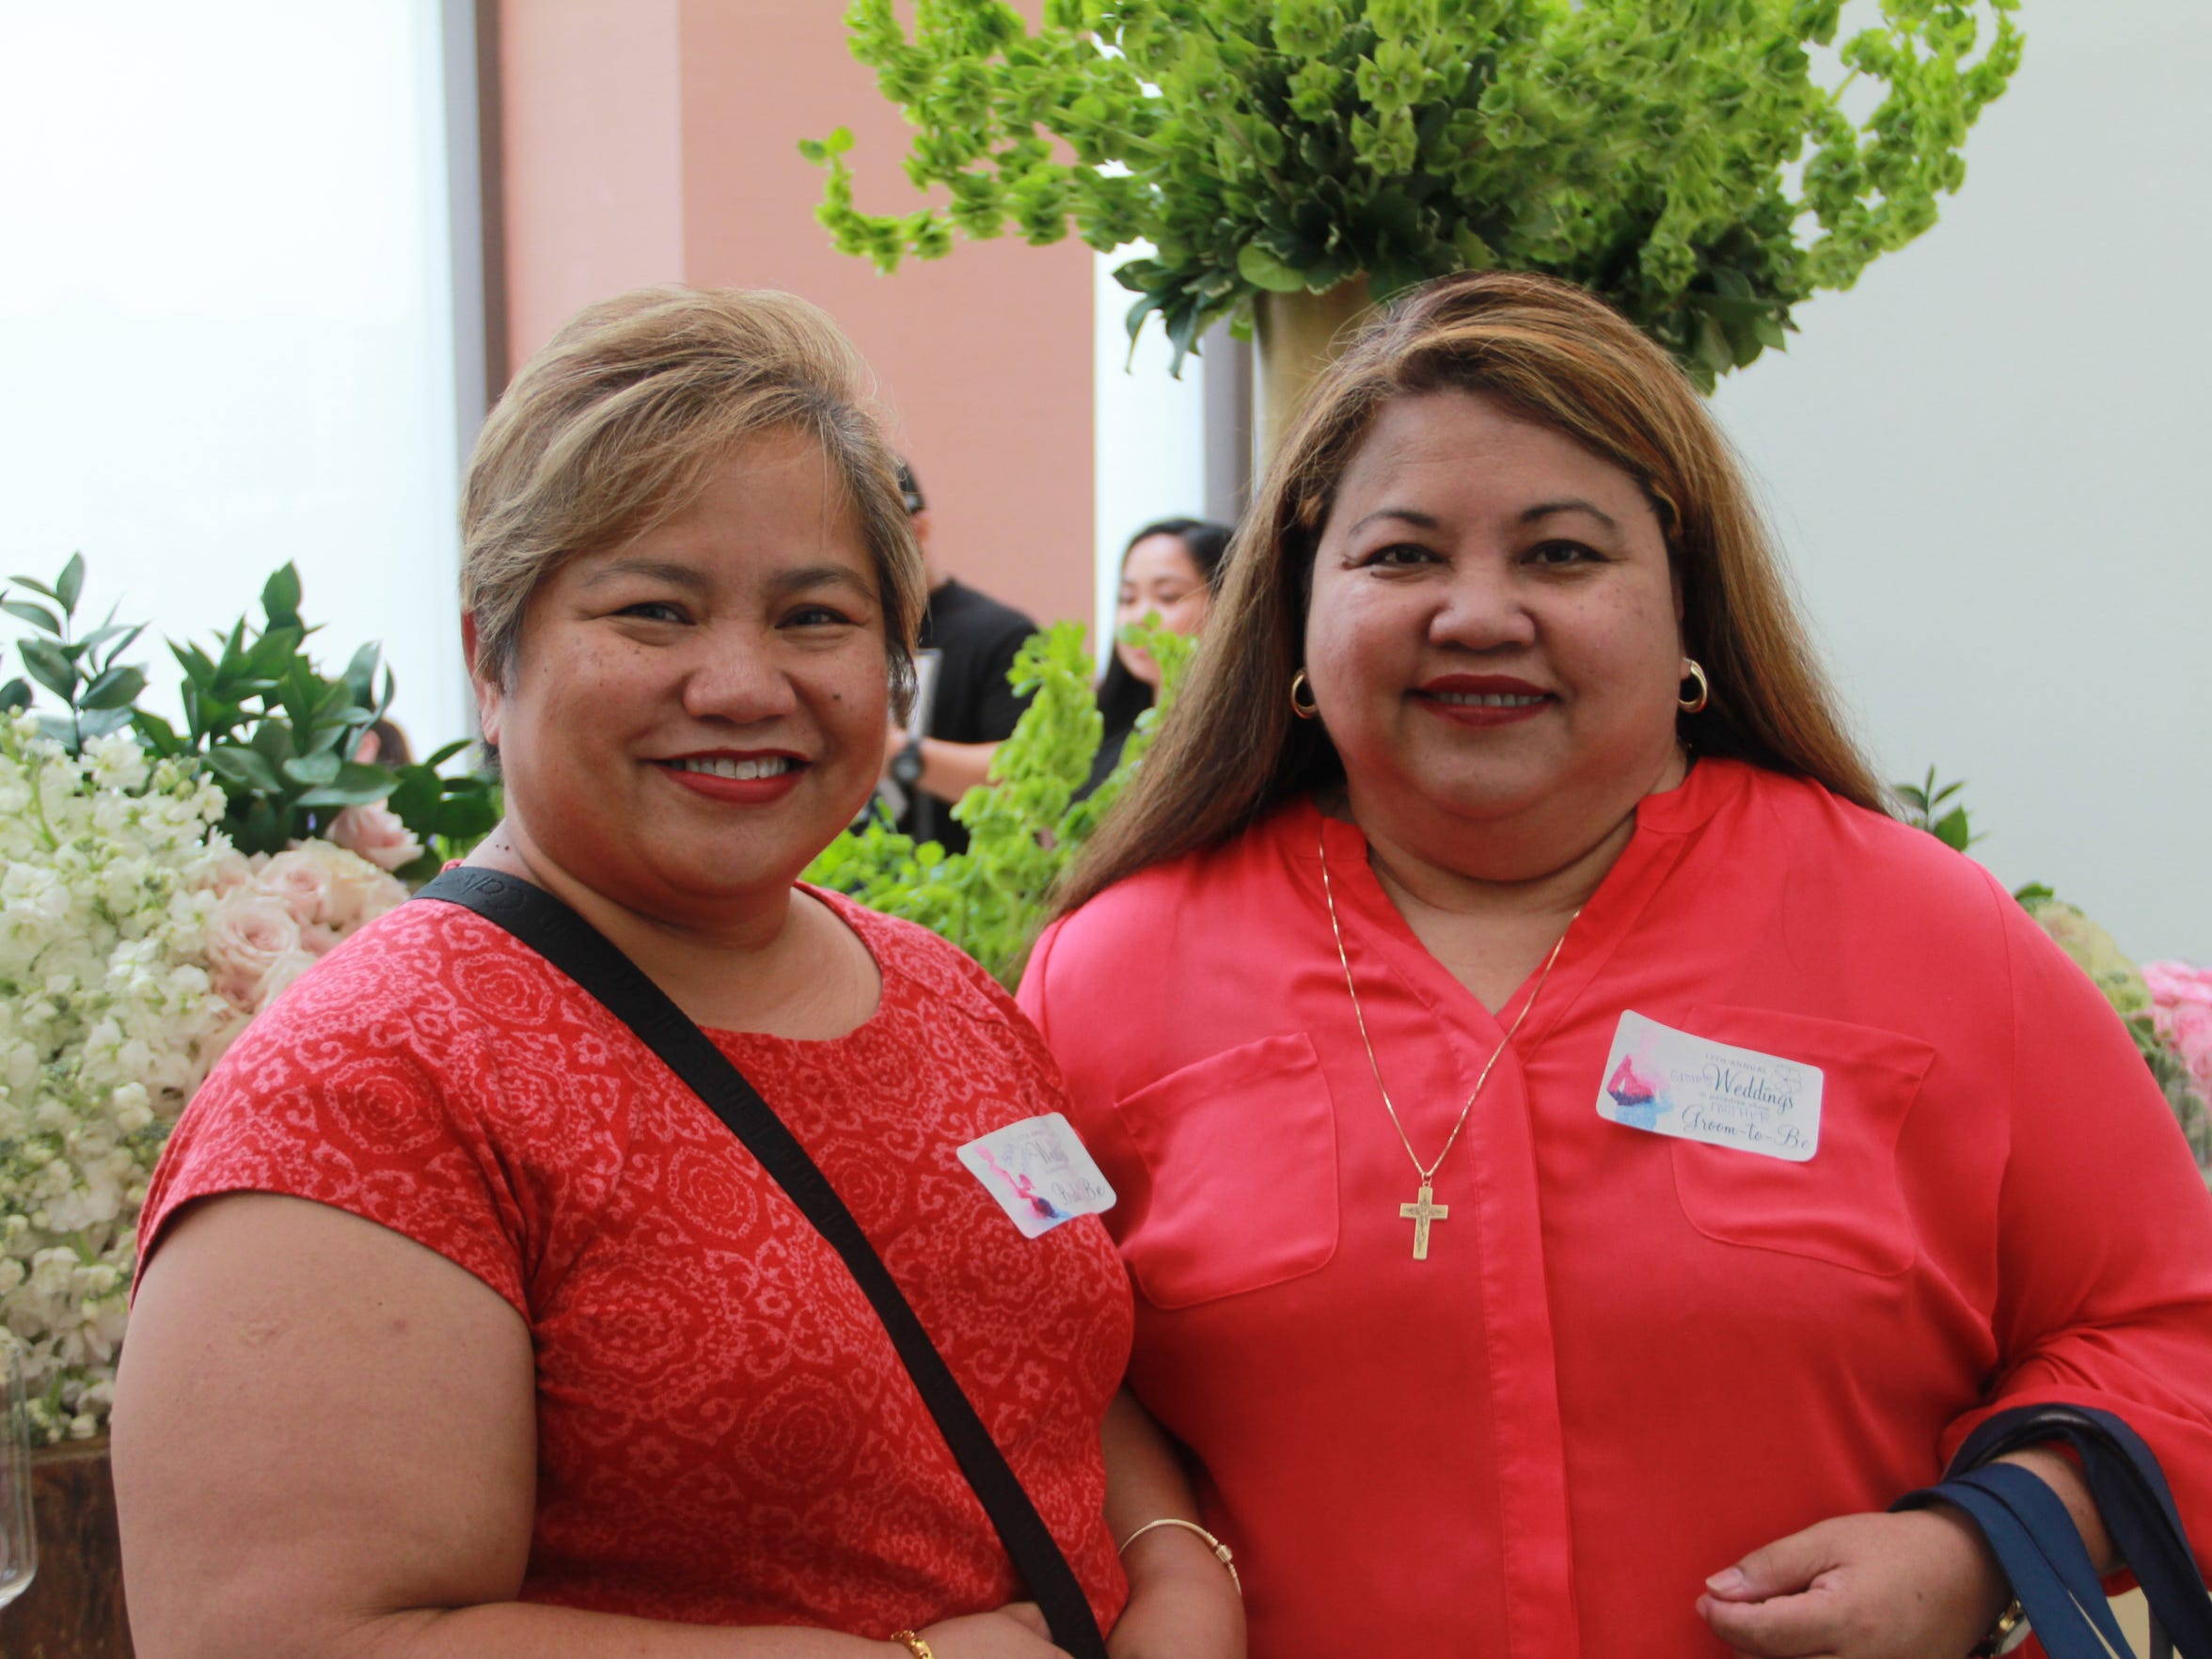 Linda Steiner, left, and Doris Dela Cruz, right, pose